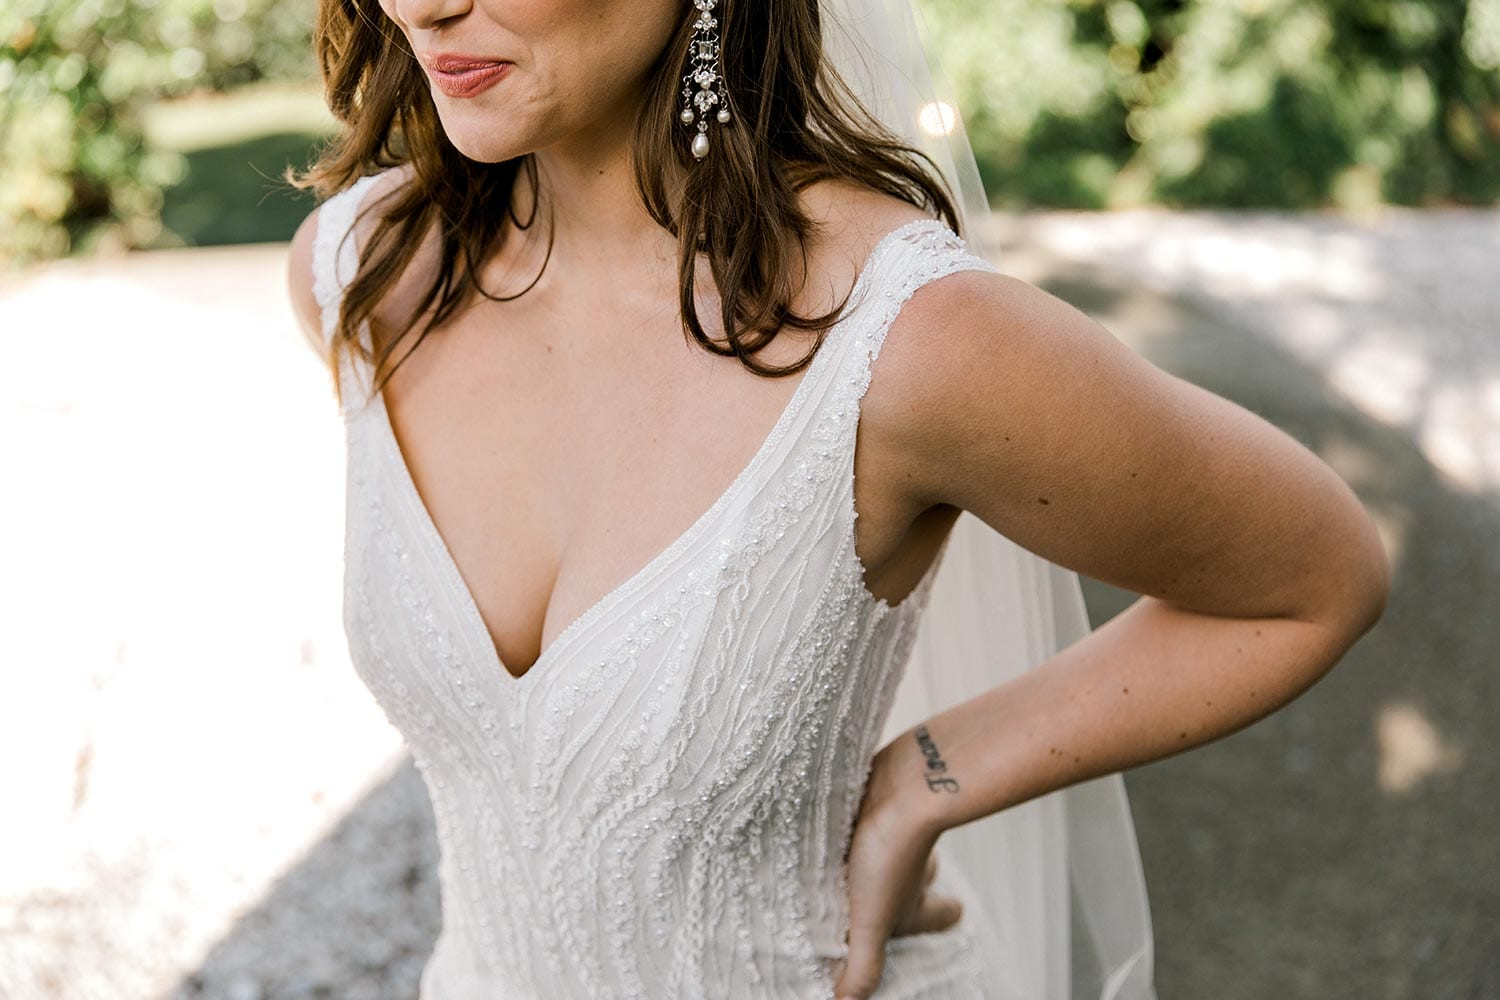 Kiera Wedding Dress from Vinka Design. Beautifully beaded lace wedding dress. Deep V-neckline both front and back is complemented with delicate sheer lace shoulder detail & structured bodice. Close up detail of structured bodice with low V-neckline. Photographed at Tui Hills.